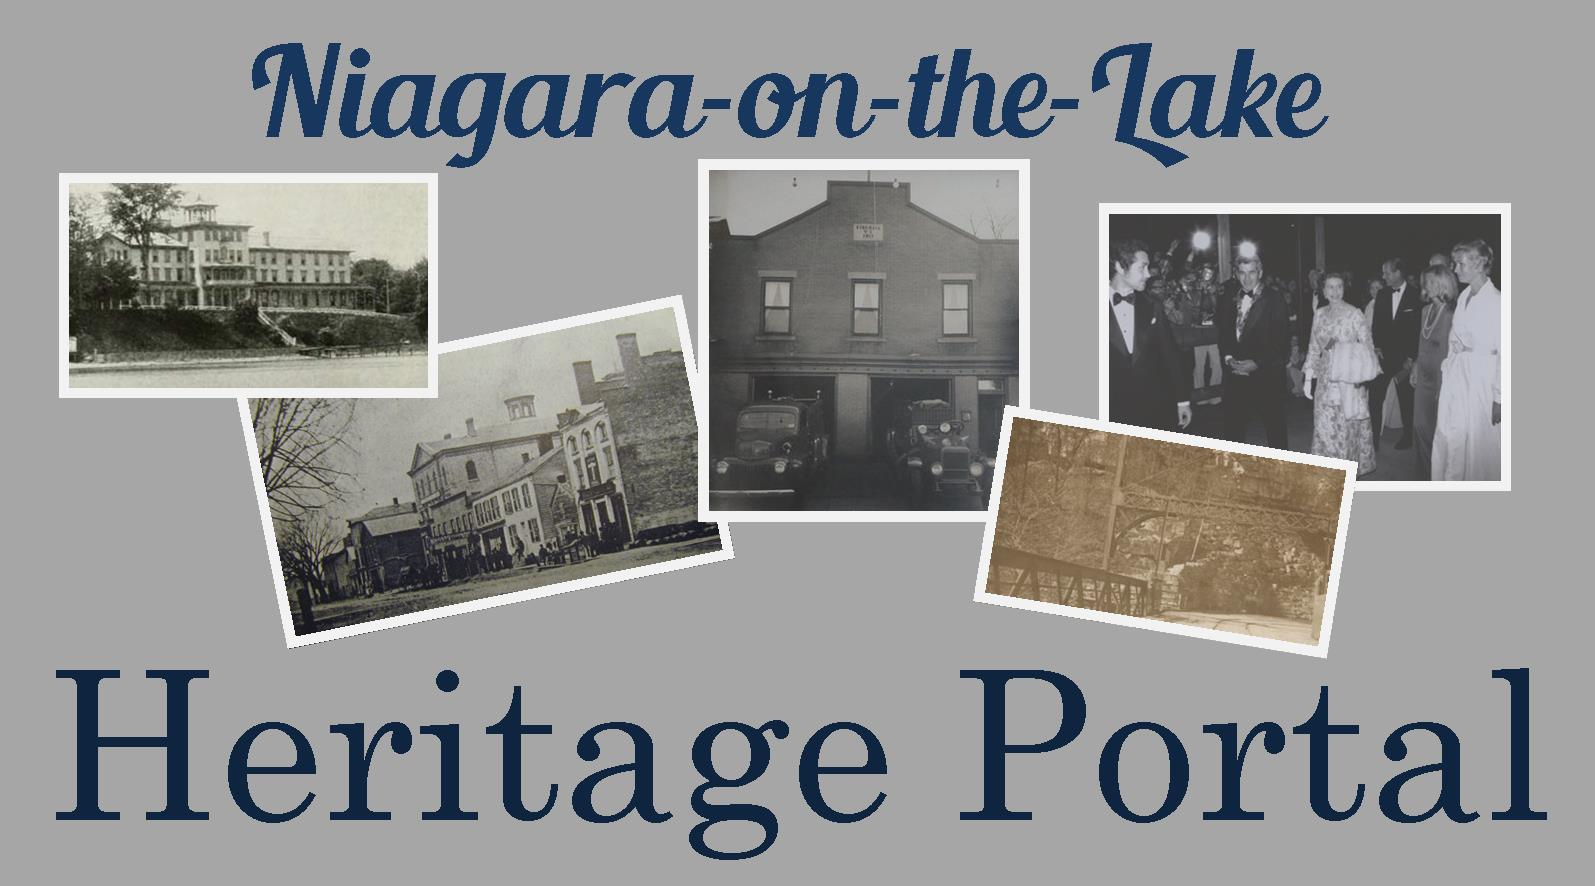 Niagara-on-the-Lake Heritage Portal